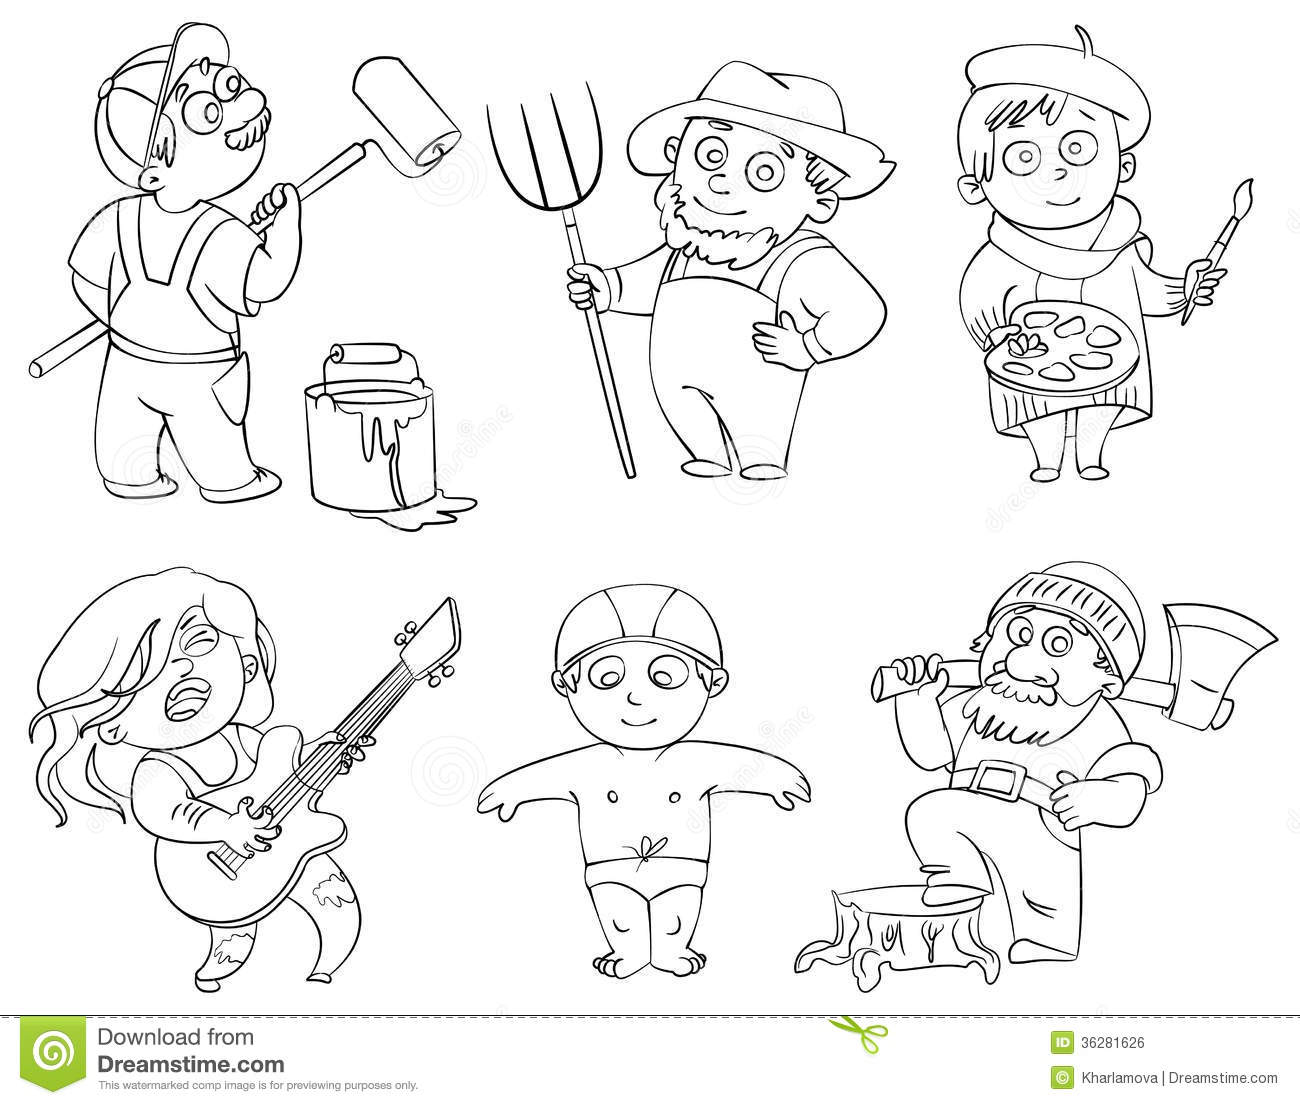 professions colouring pages (page 2)